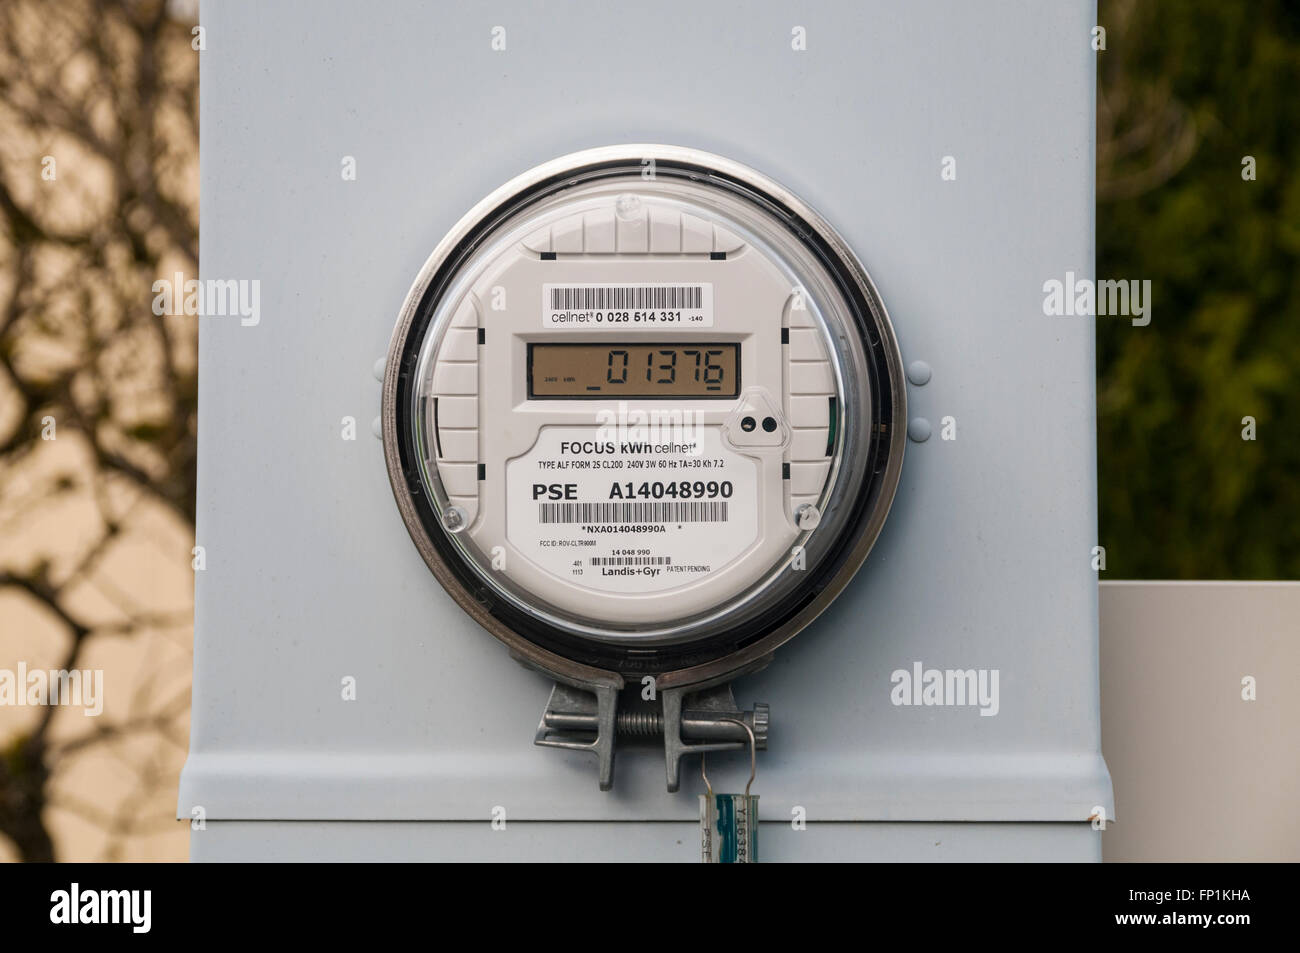 Digital electric meter for a mobile home park. - Stock Image